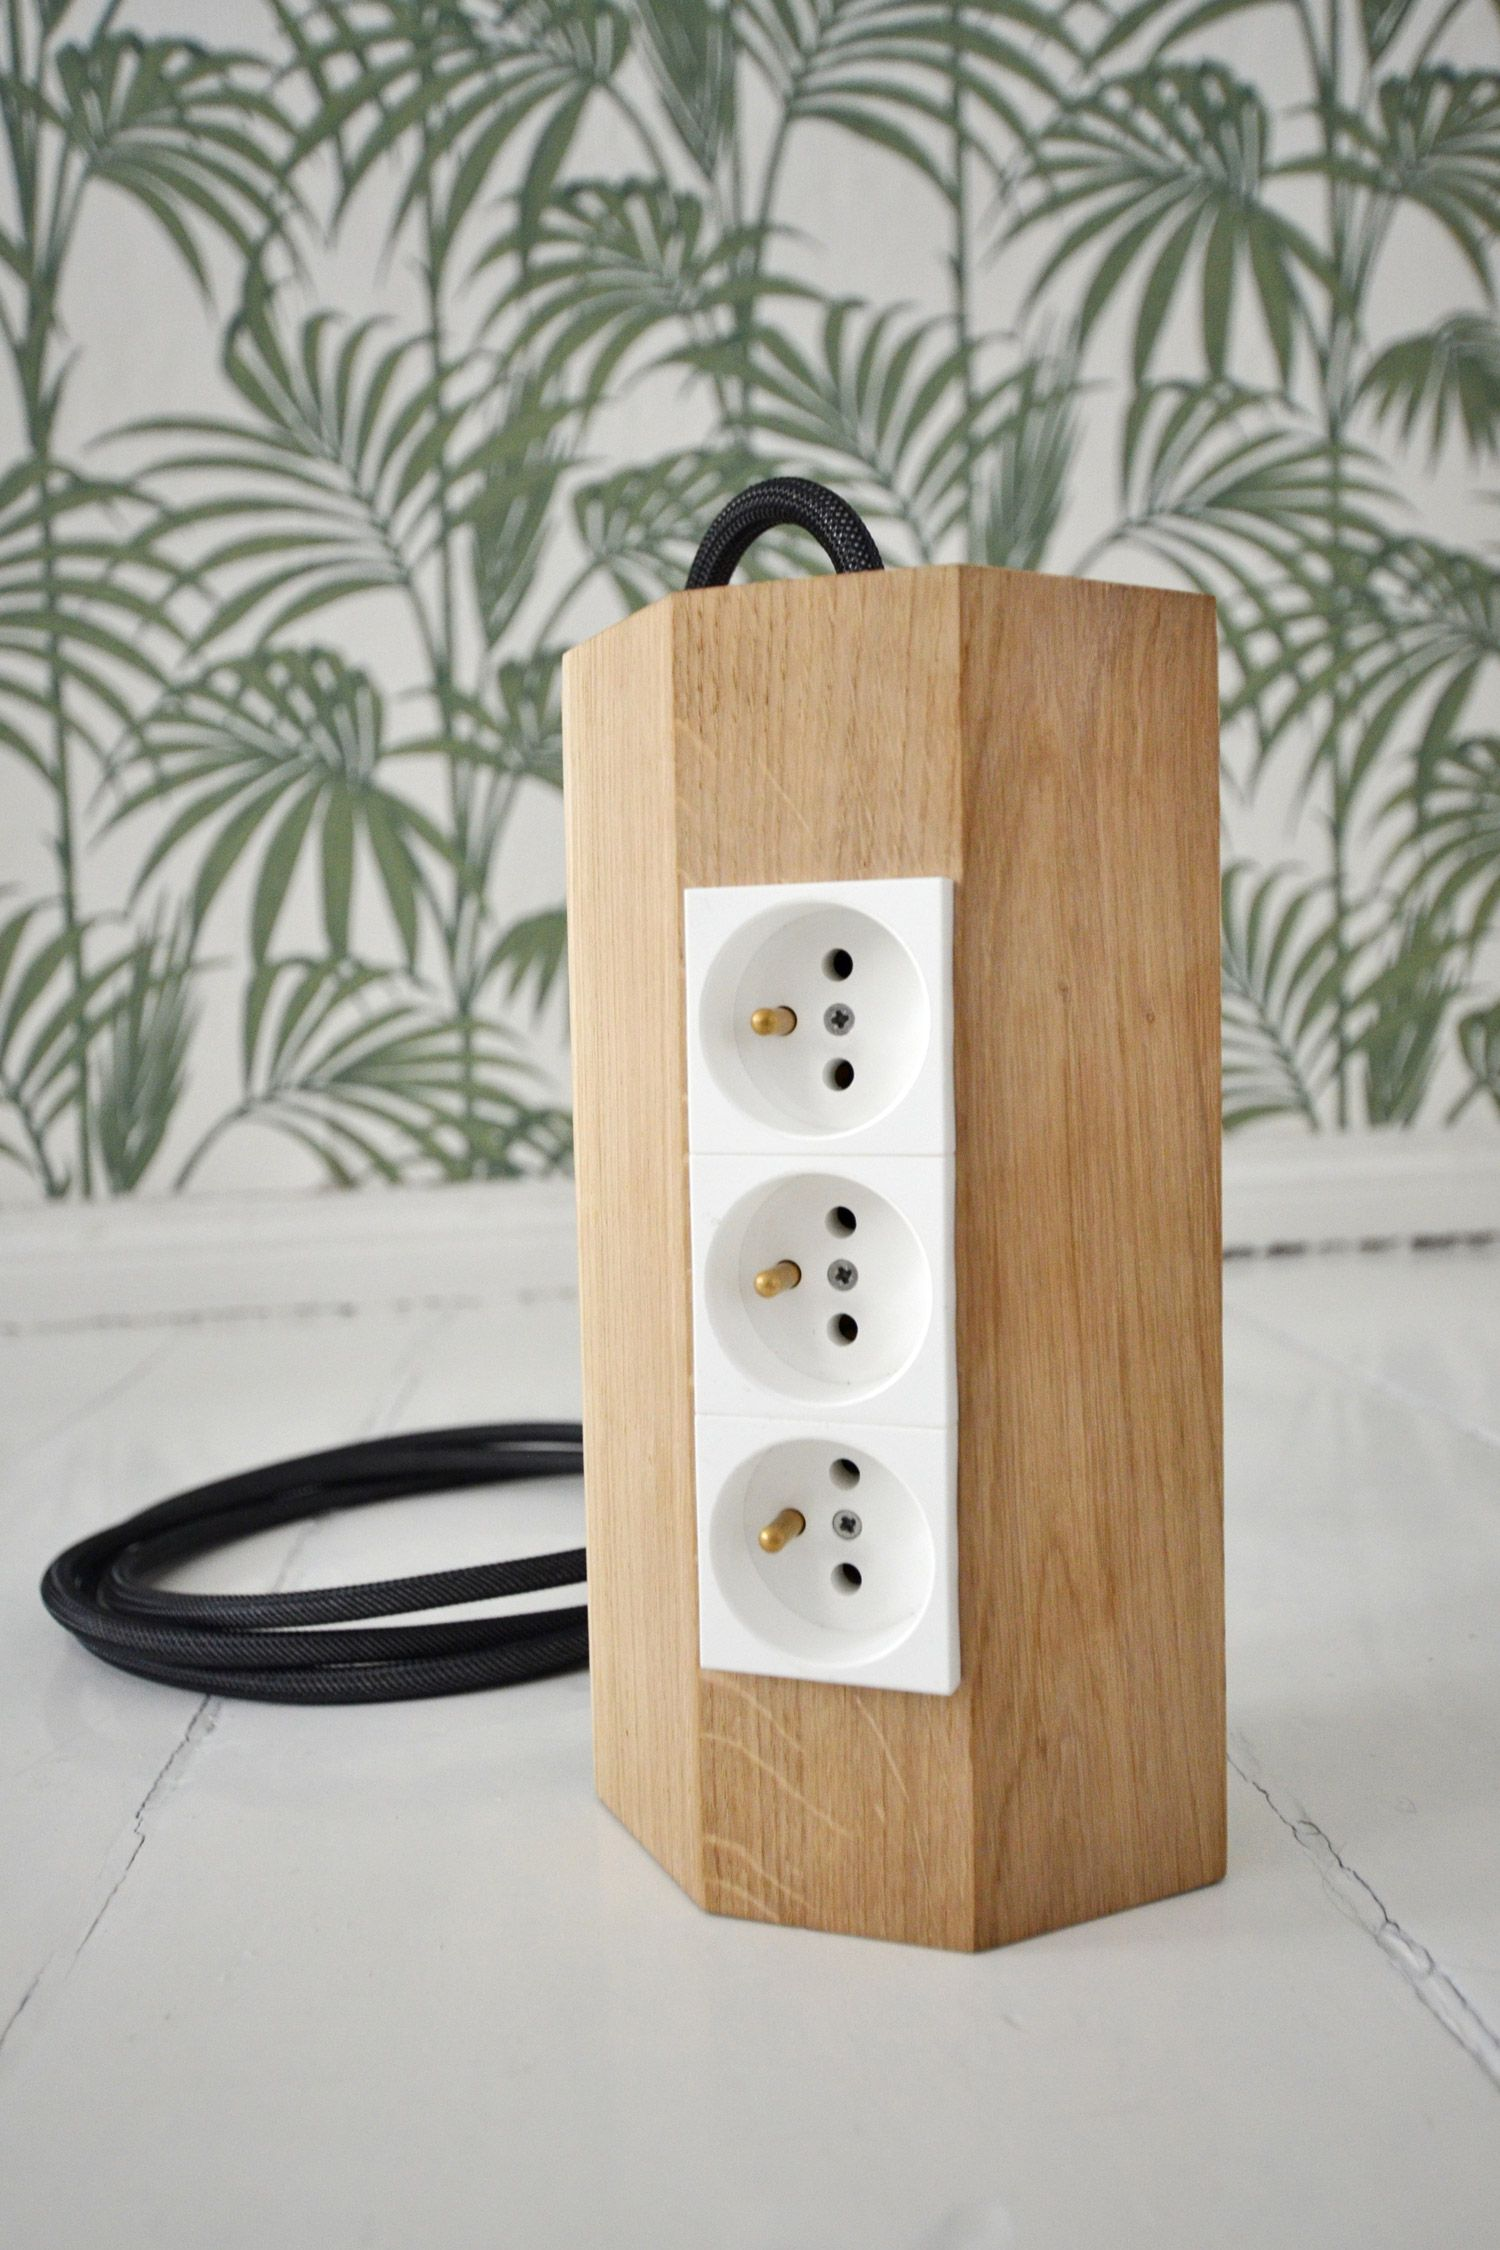 Benefits of Unplugging Things to Reduce Waste and Energy